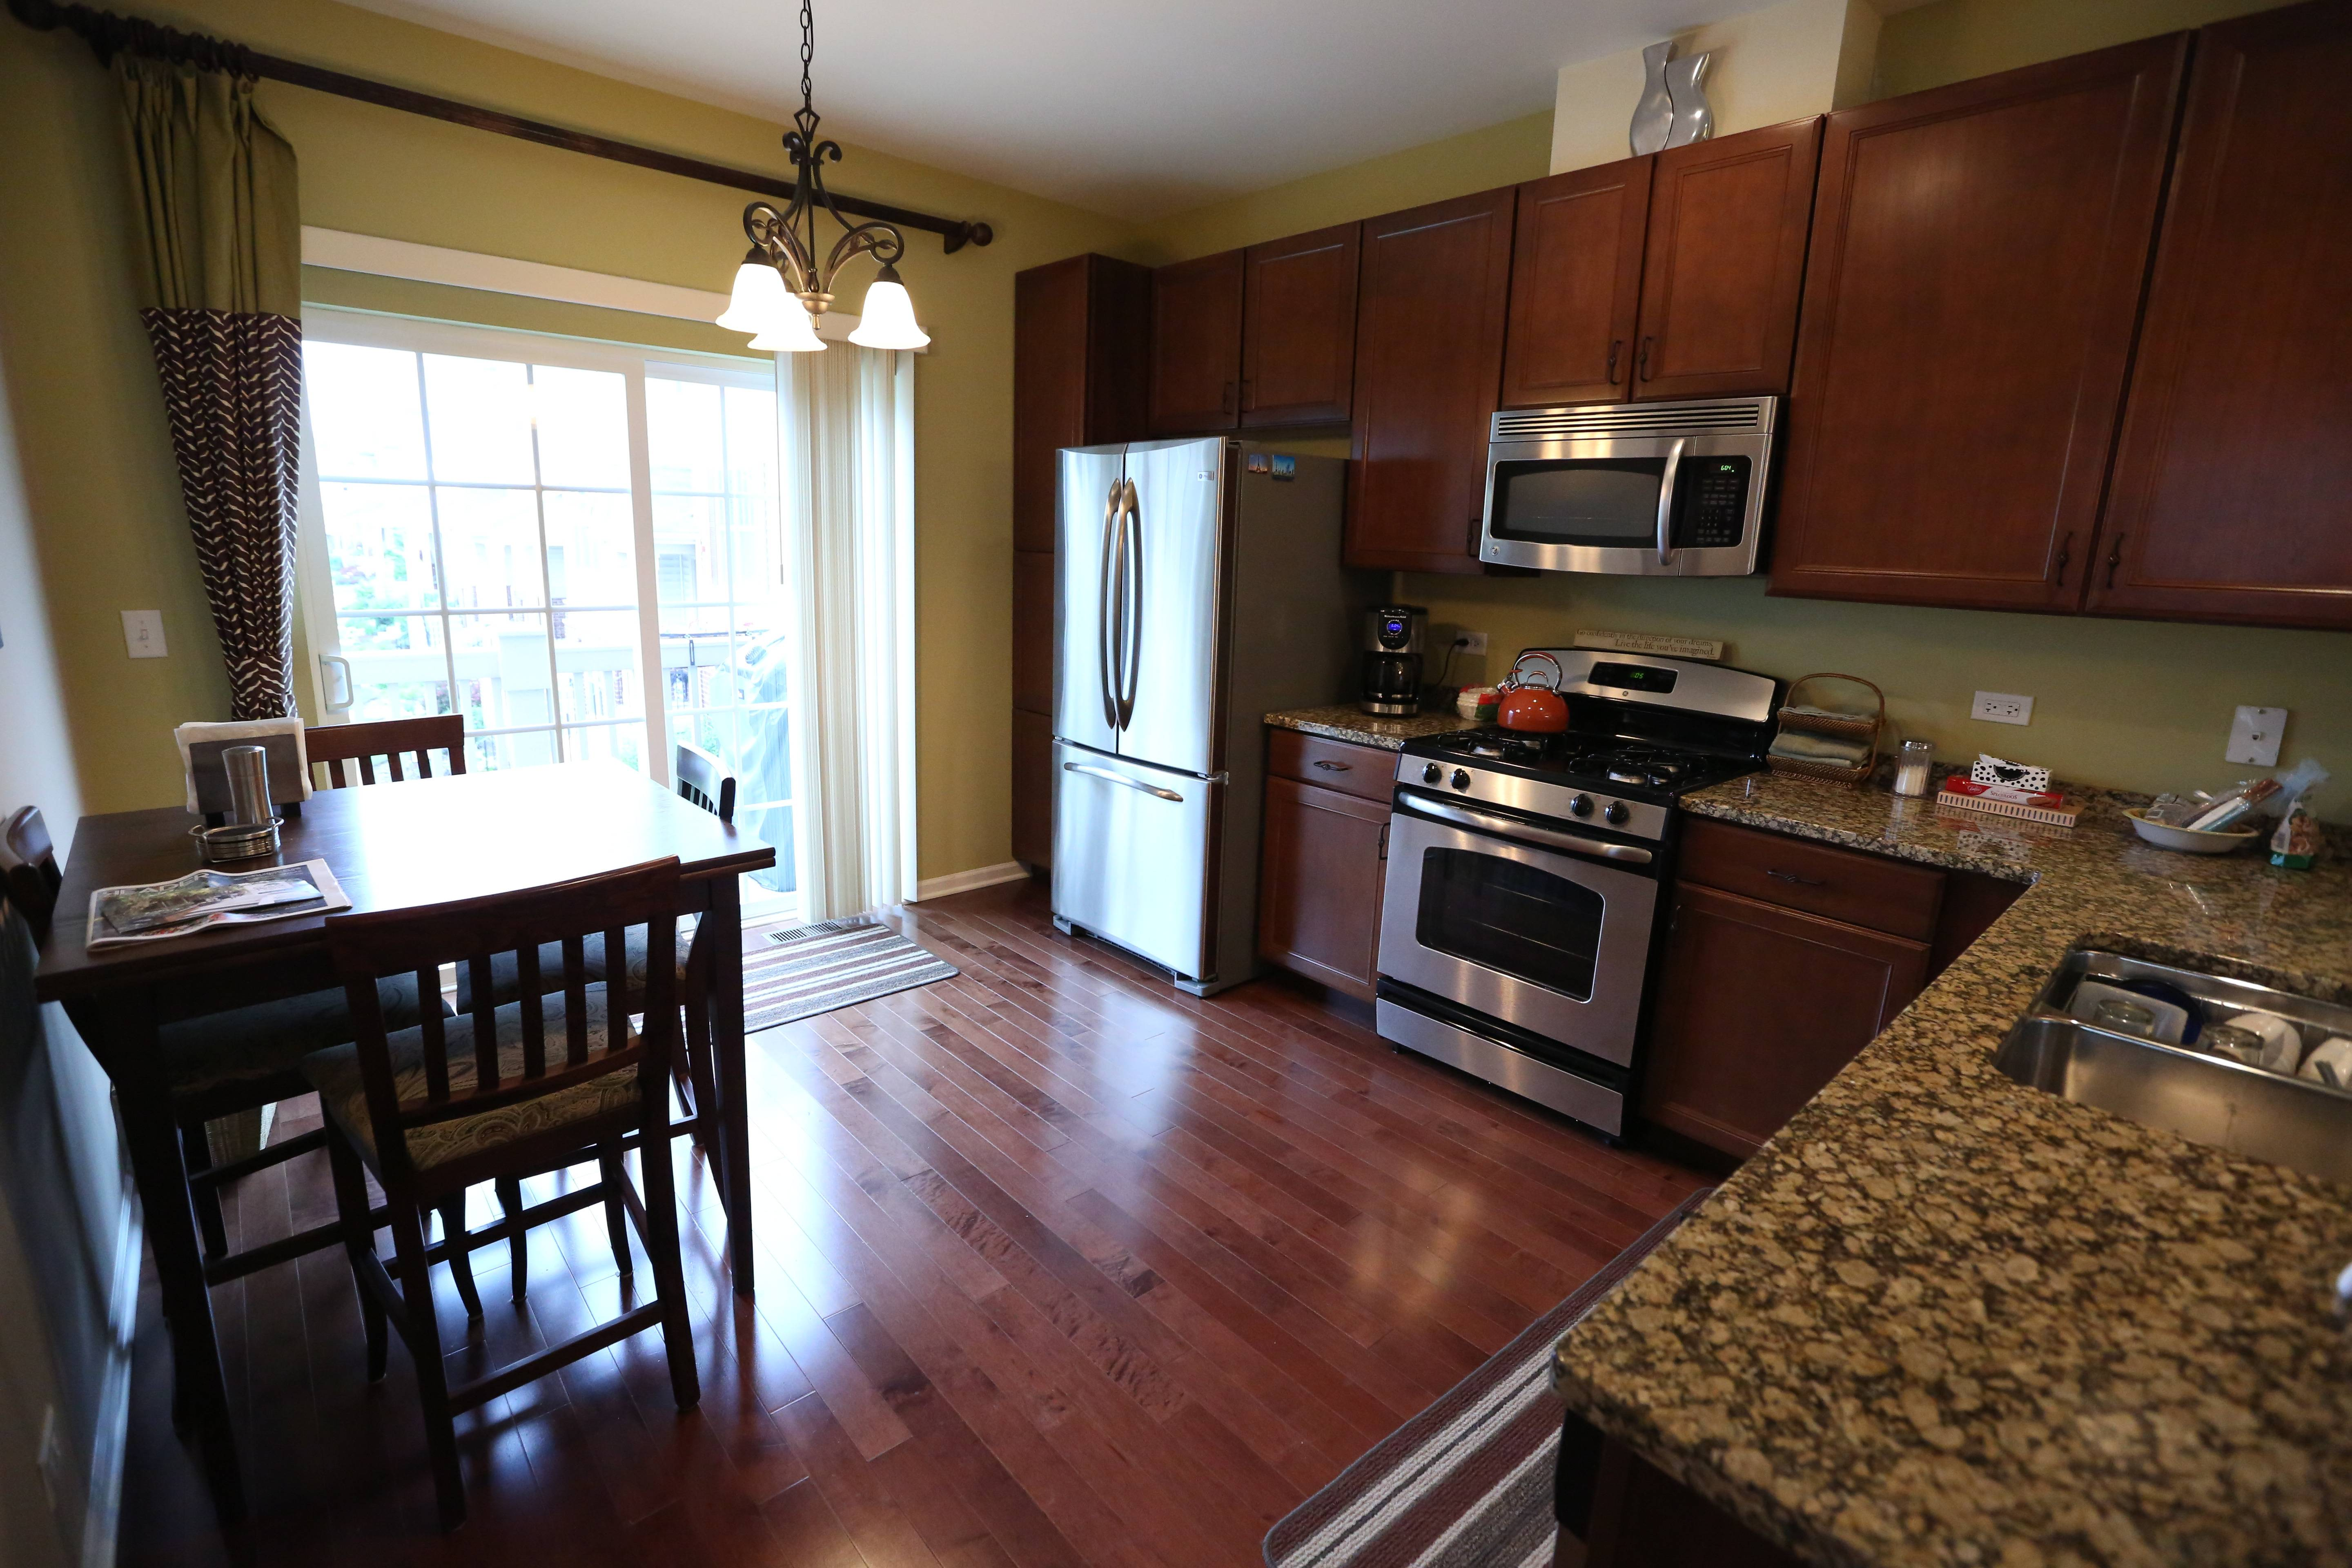 The kitchen in a move-in ready townhouse that Bill McPartlin purchased in Des Plaines from Lexington Homes.